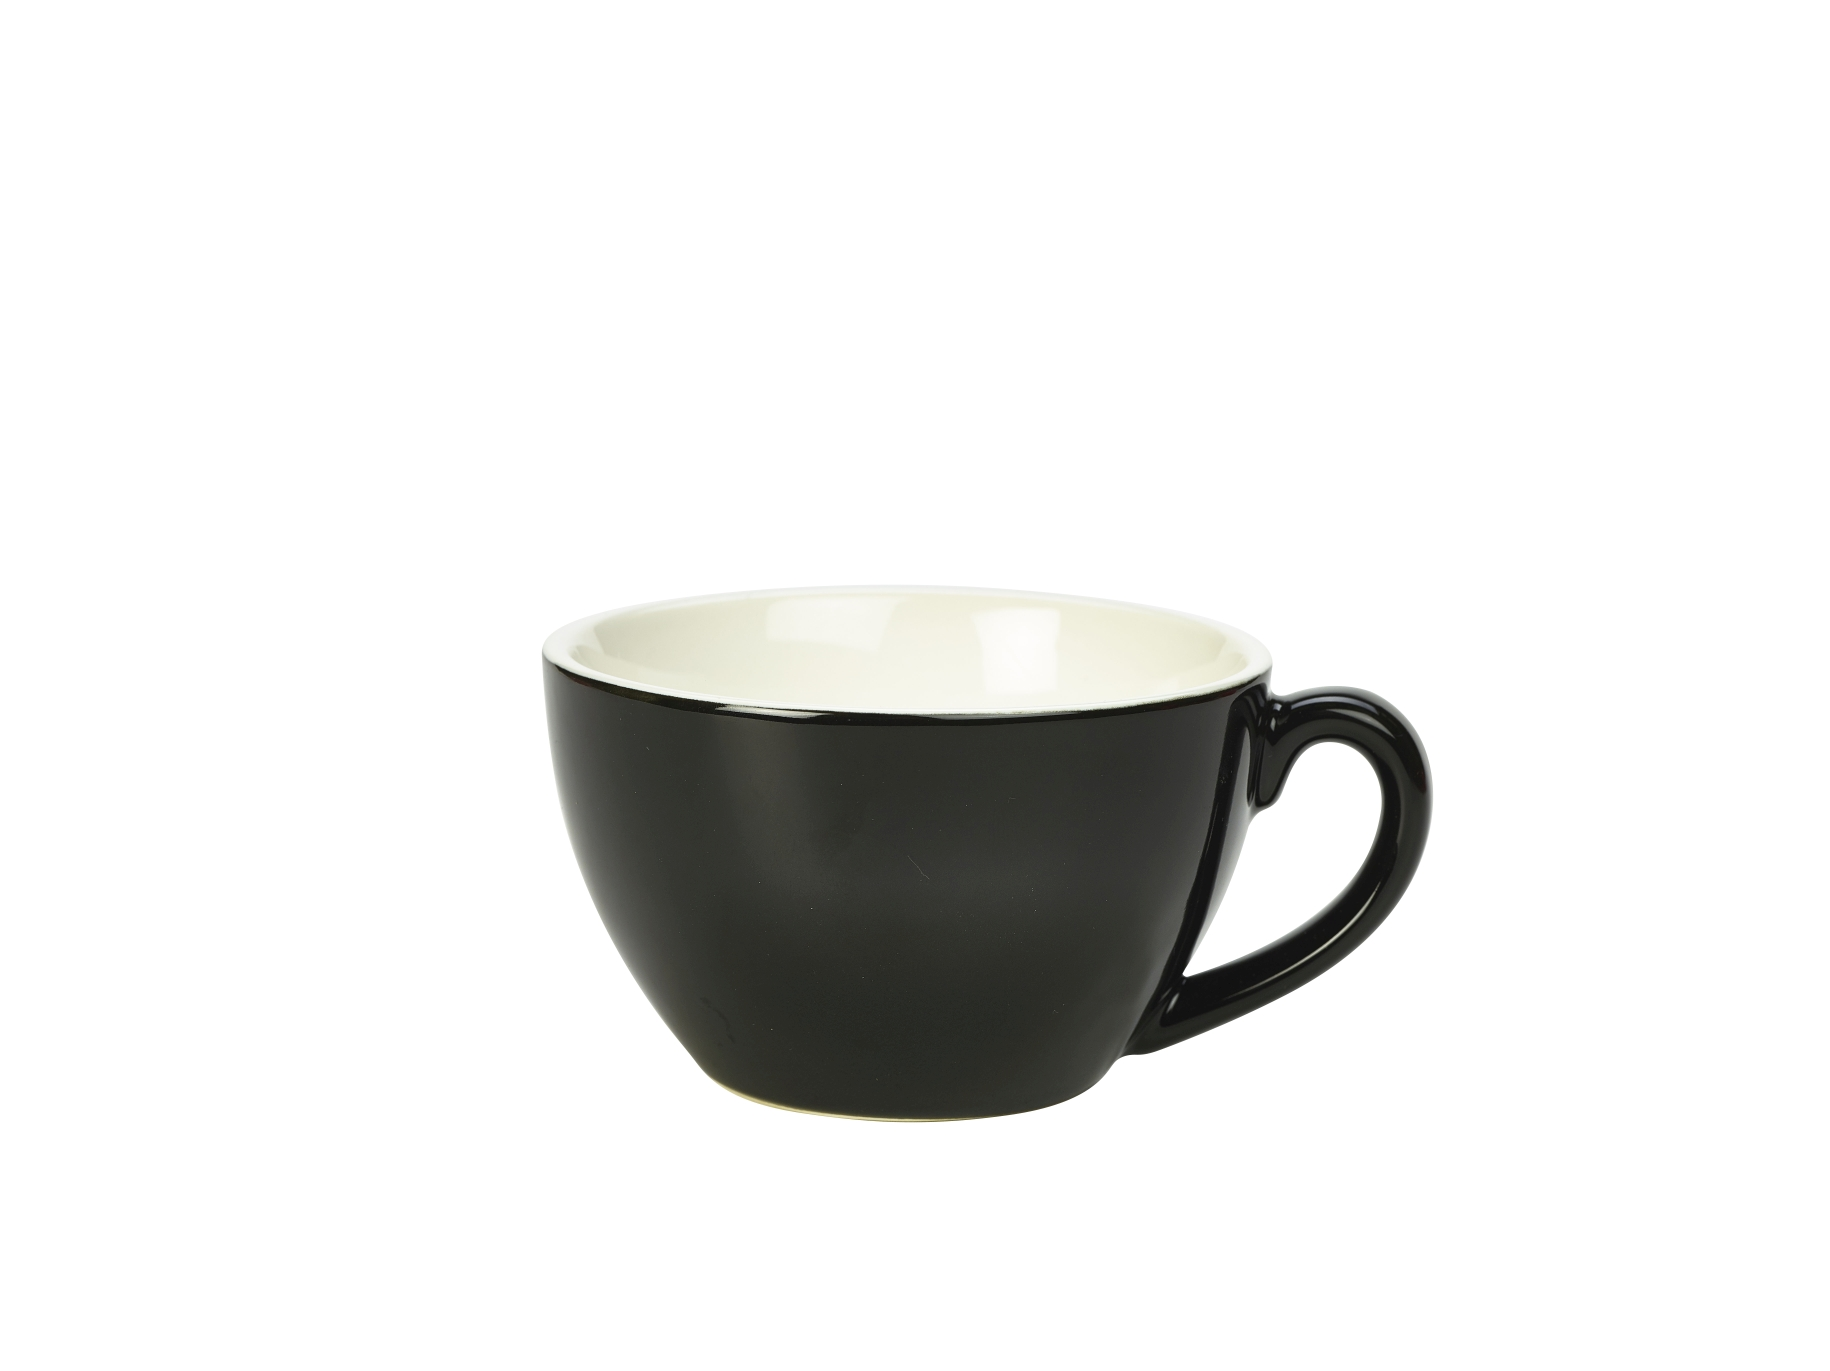 Genware Porcelain Bowl Shaped Cup 34cl Black